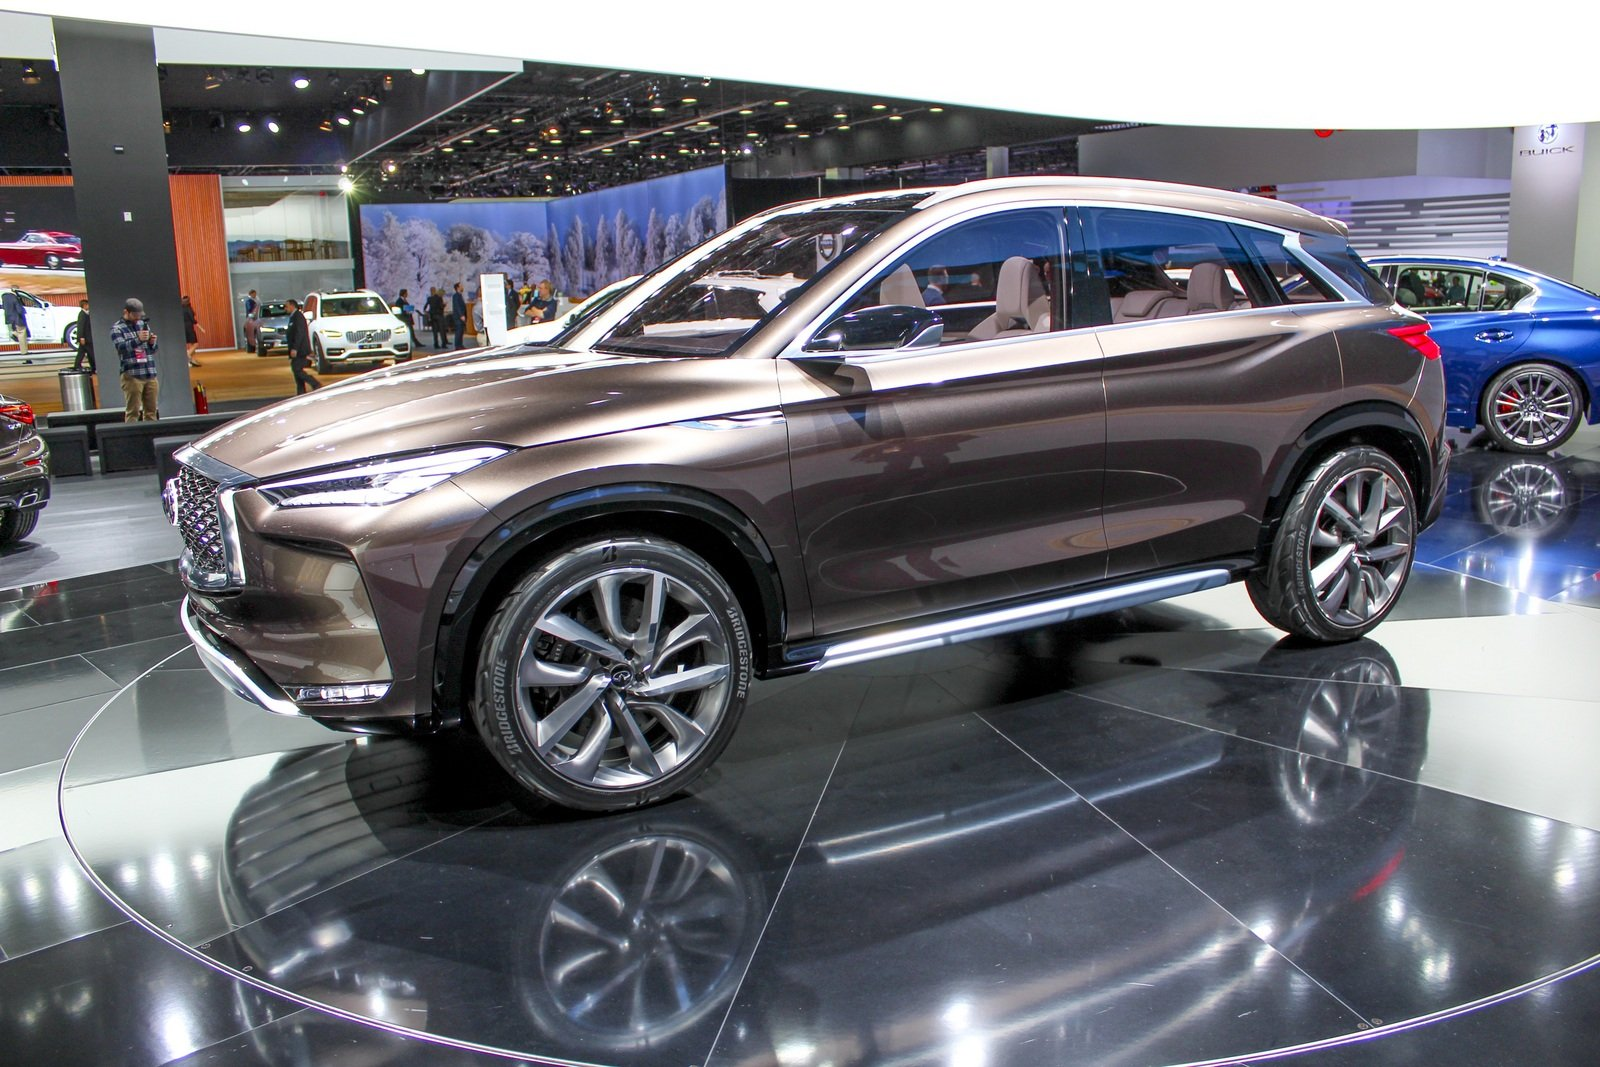 2017 infiniti qx50 concept picture 702026 car review top speed. Black Bedroom Furniture Sets. Home Design Ideas